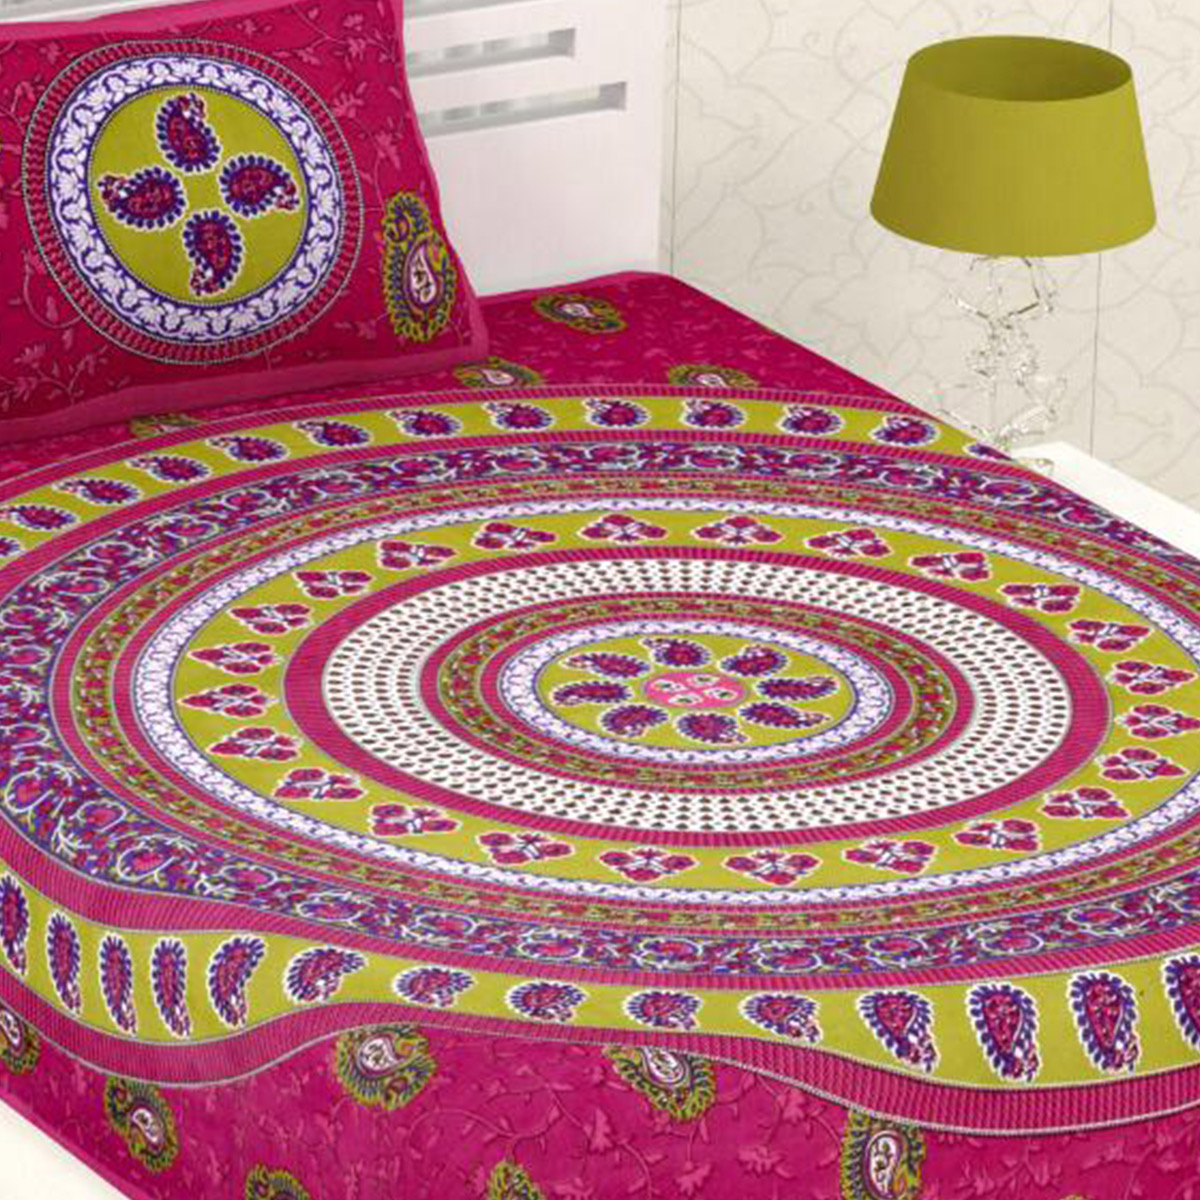 Diva Collection - Pink Colored Printed Cotton Single Bedsheet With Pillow Cover